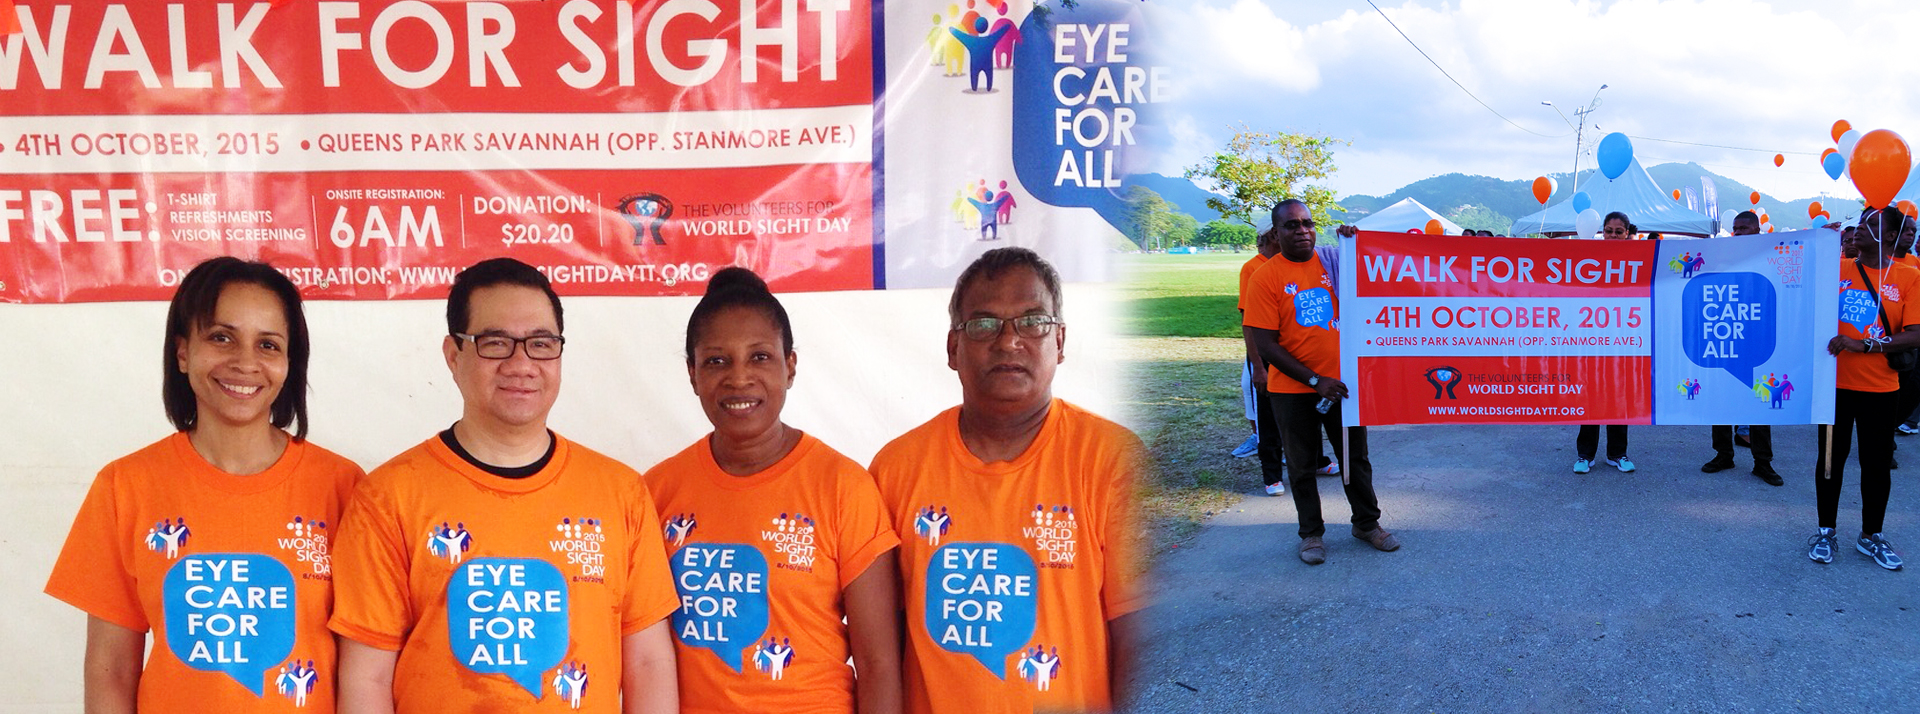 Walk For Sight 2015